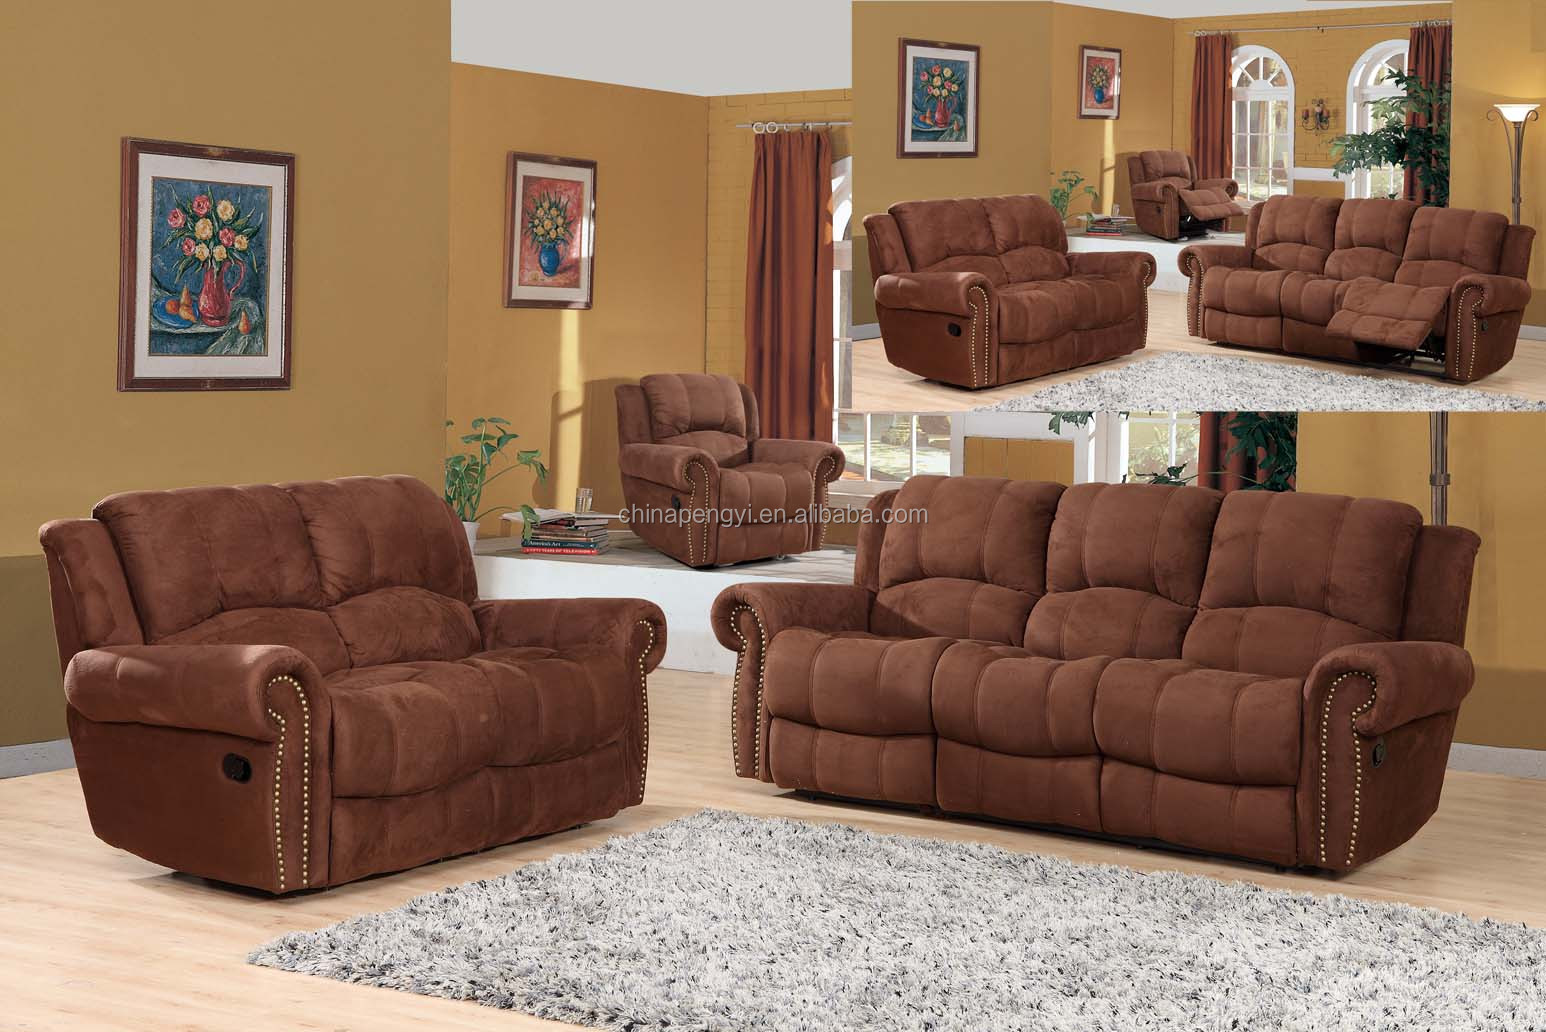 Modern microfiber recliner sofa sets living room furniture - Microfiber living room furniture sets ...